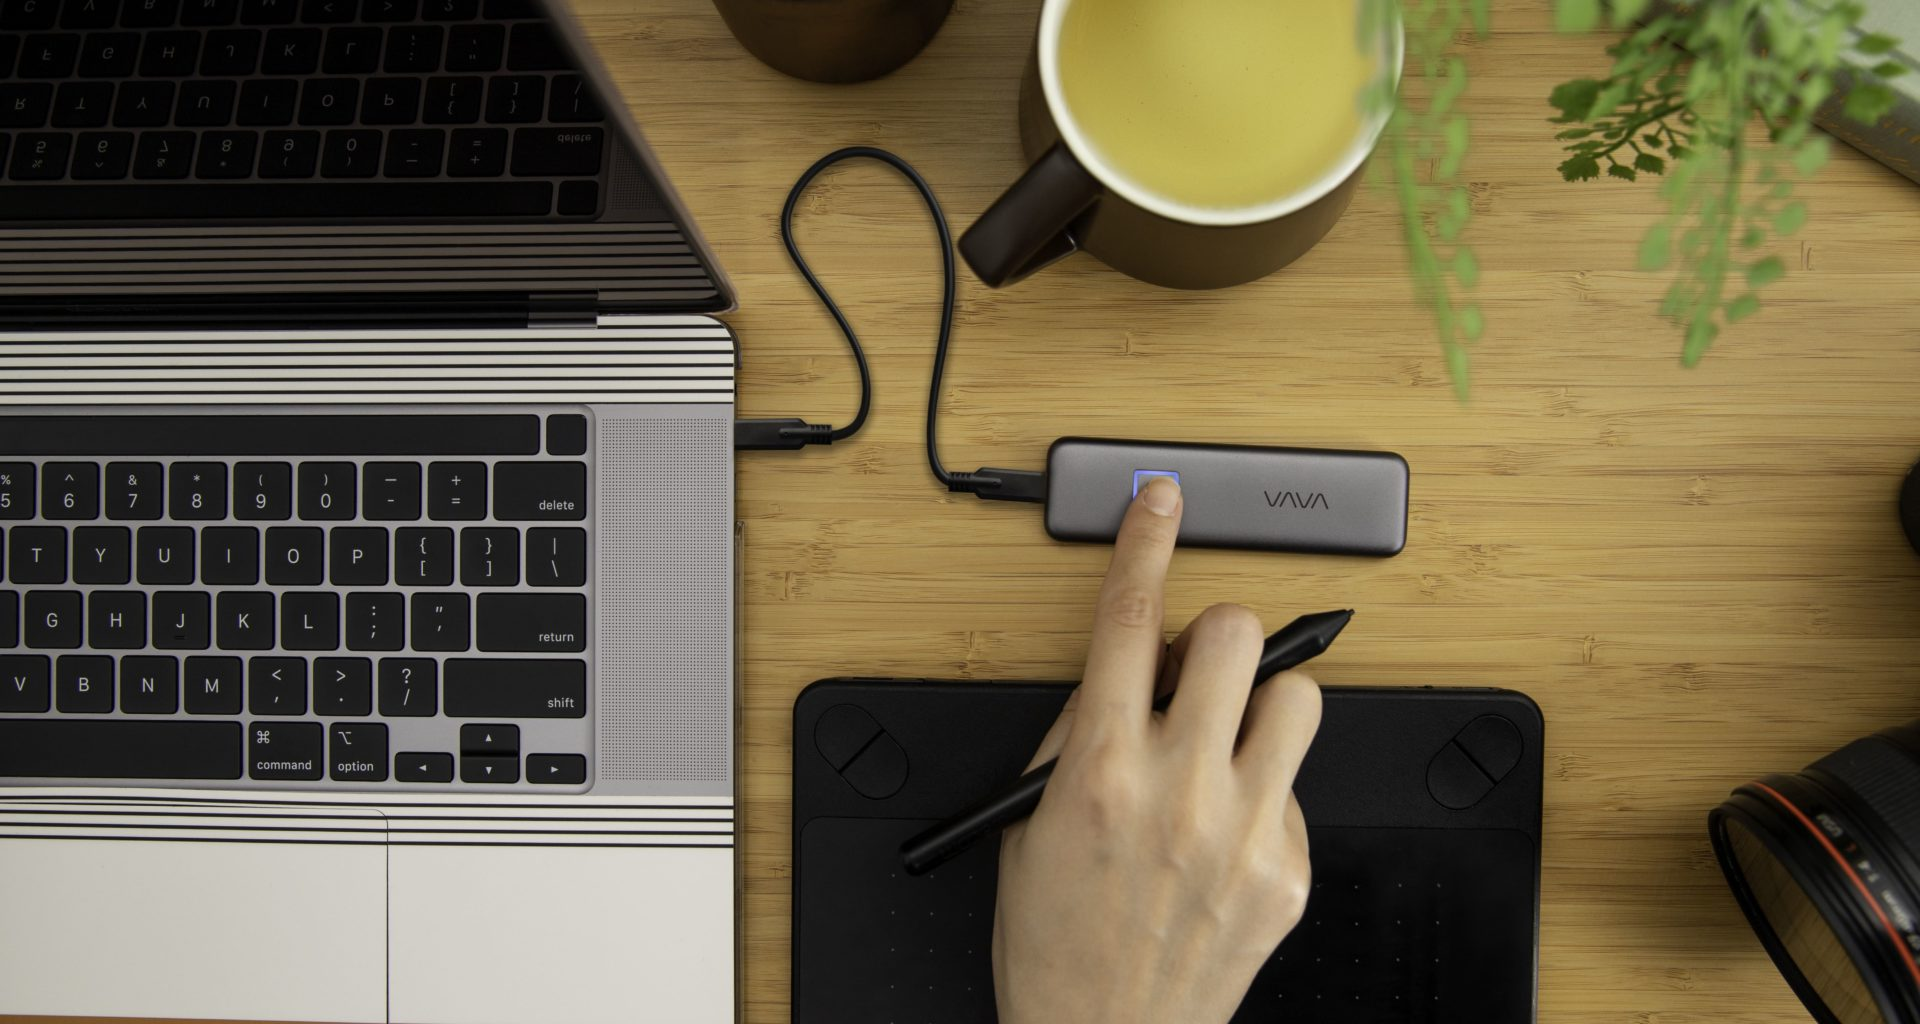 VAVA Portable SSD Touch with Fingerprint Encryption, 540MB/s transfer speed